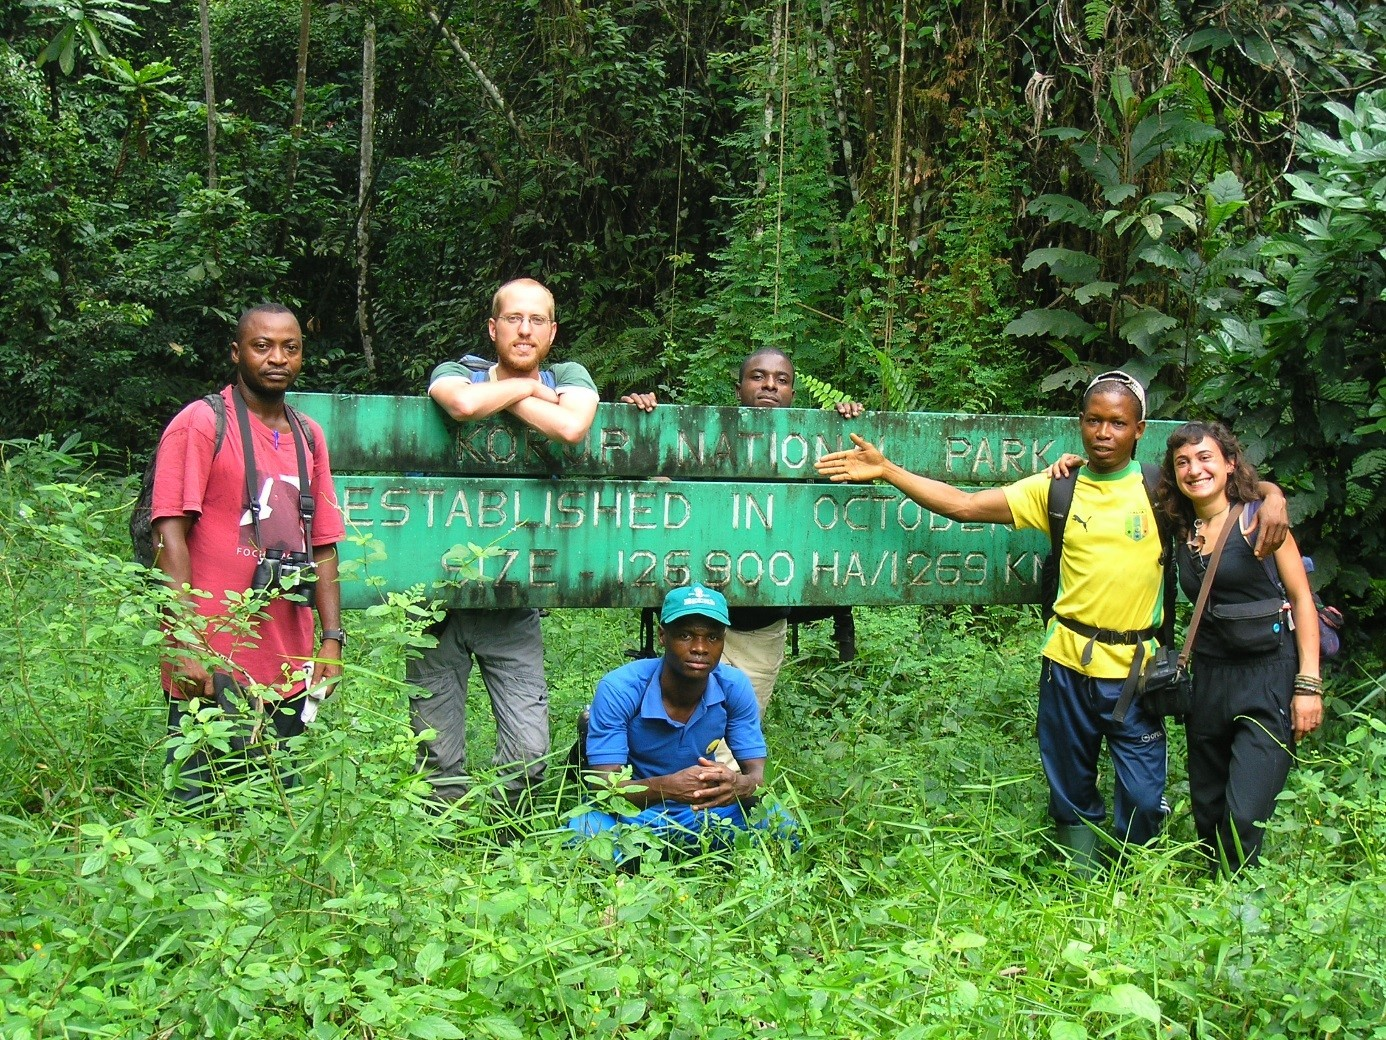 Authors of the study, Francis N Motombi (1st from left), Denis Kupsch (2nd from left) and Elleni Vendras (1st from right) with the fieldwork team at the entrance to the Korup National Park, Southwest Cameroon.